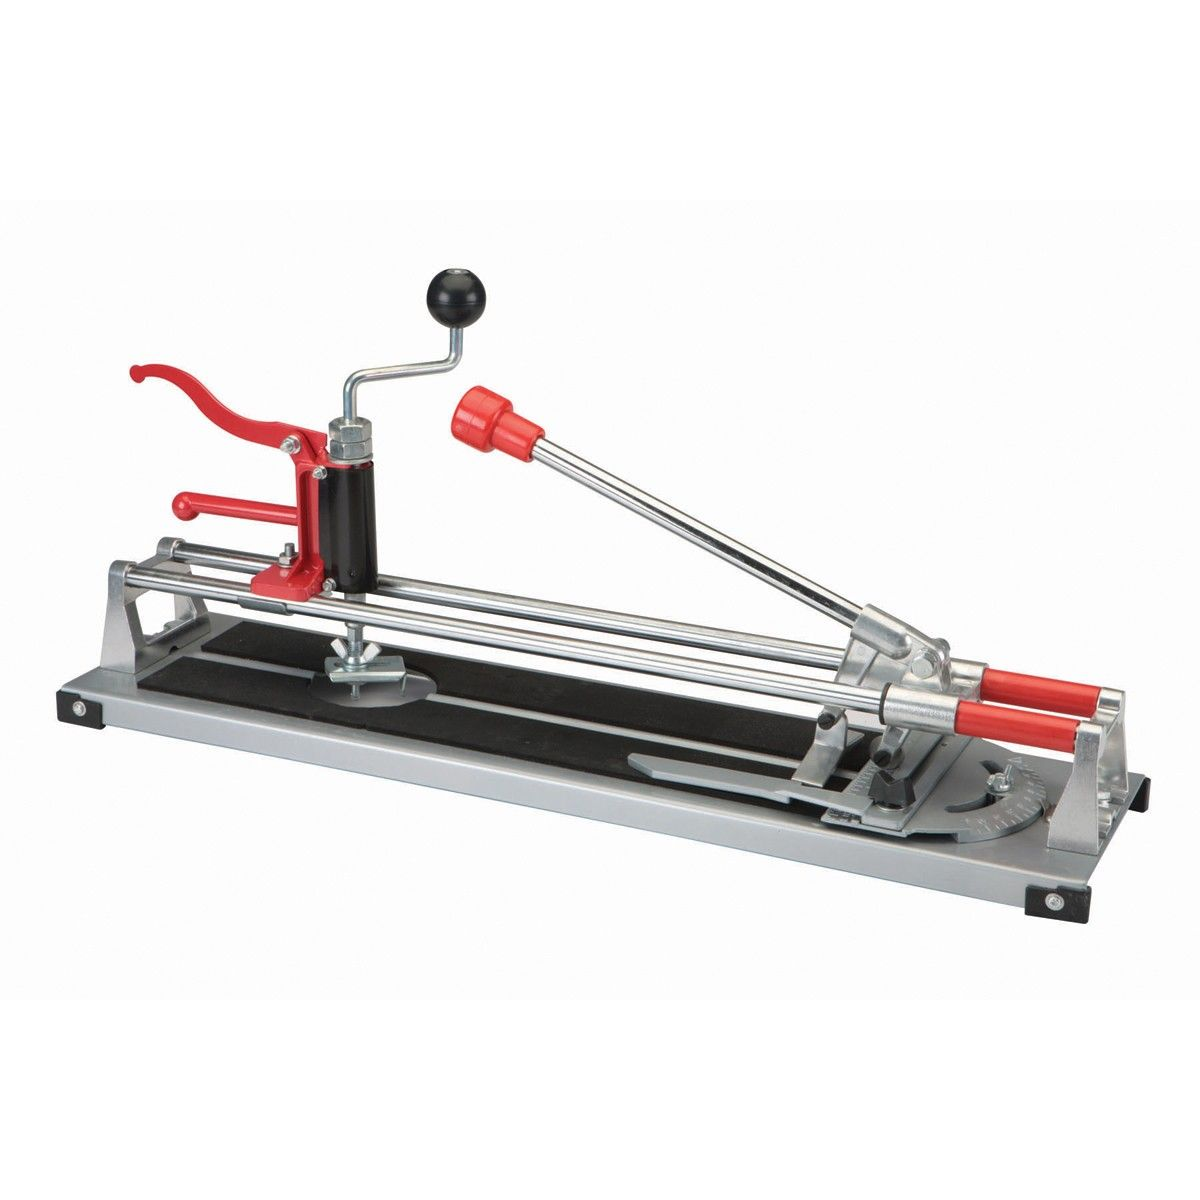 3 In 1 Heavy Duty Tile Cutter Tile Cutter Tile Projects Diy Tile